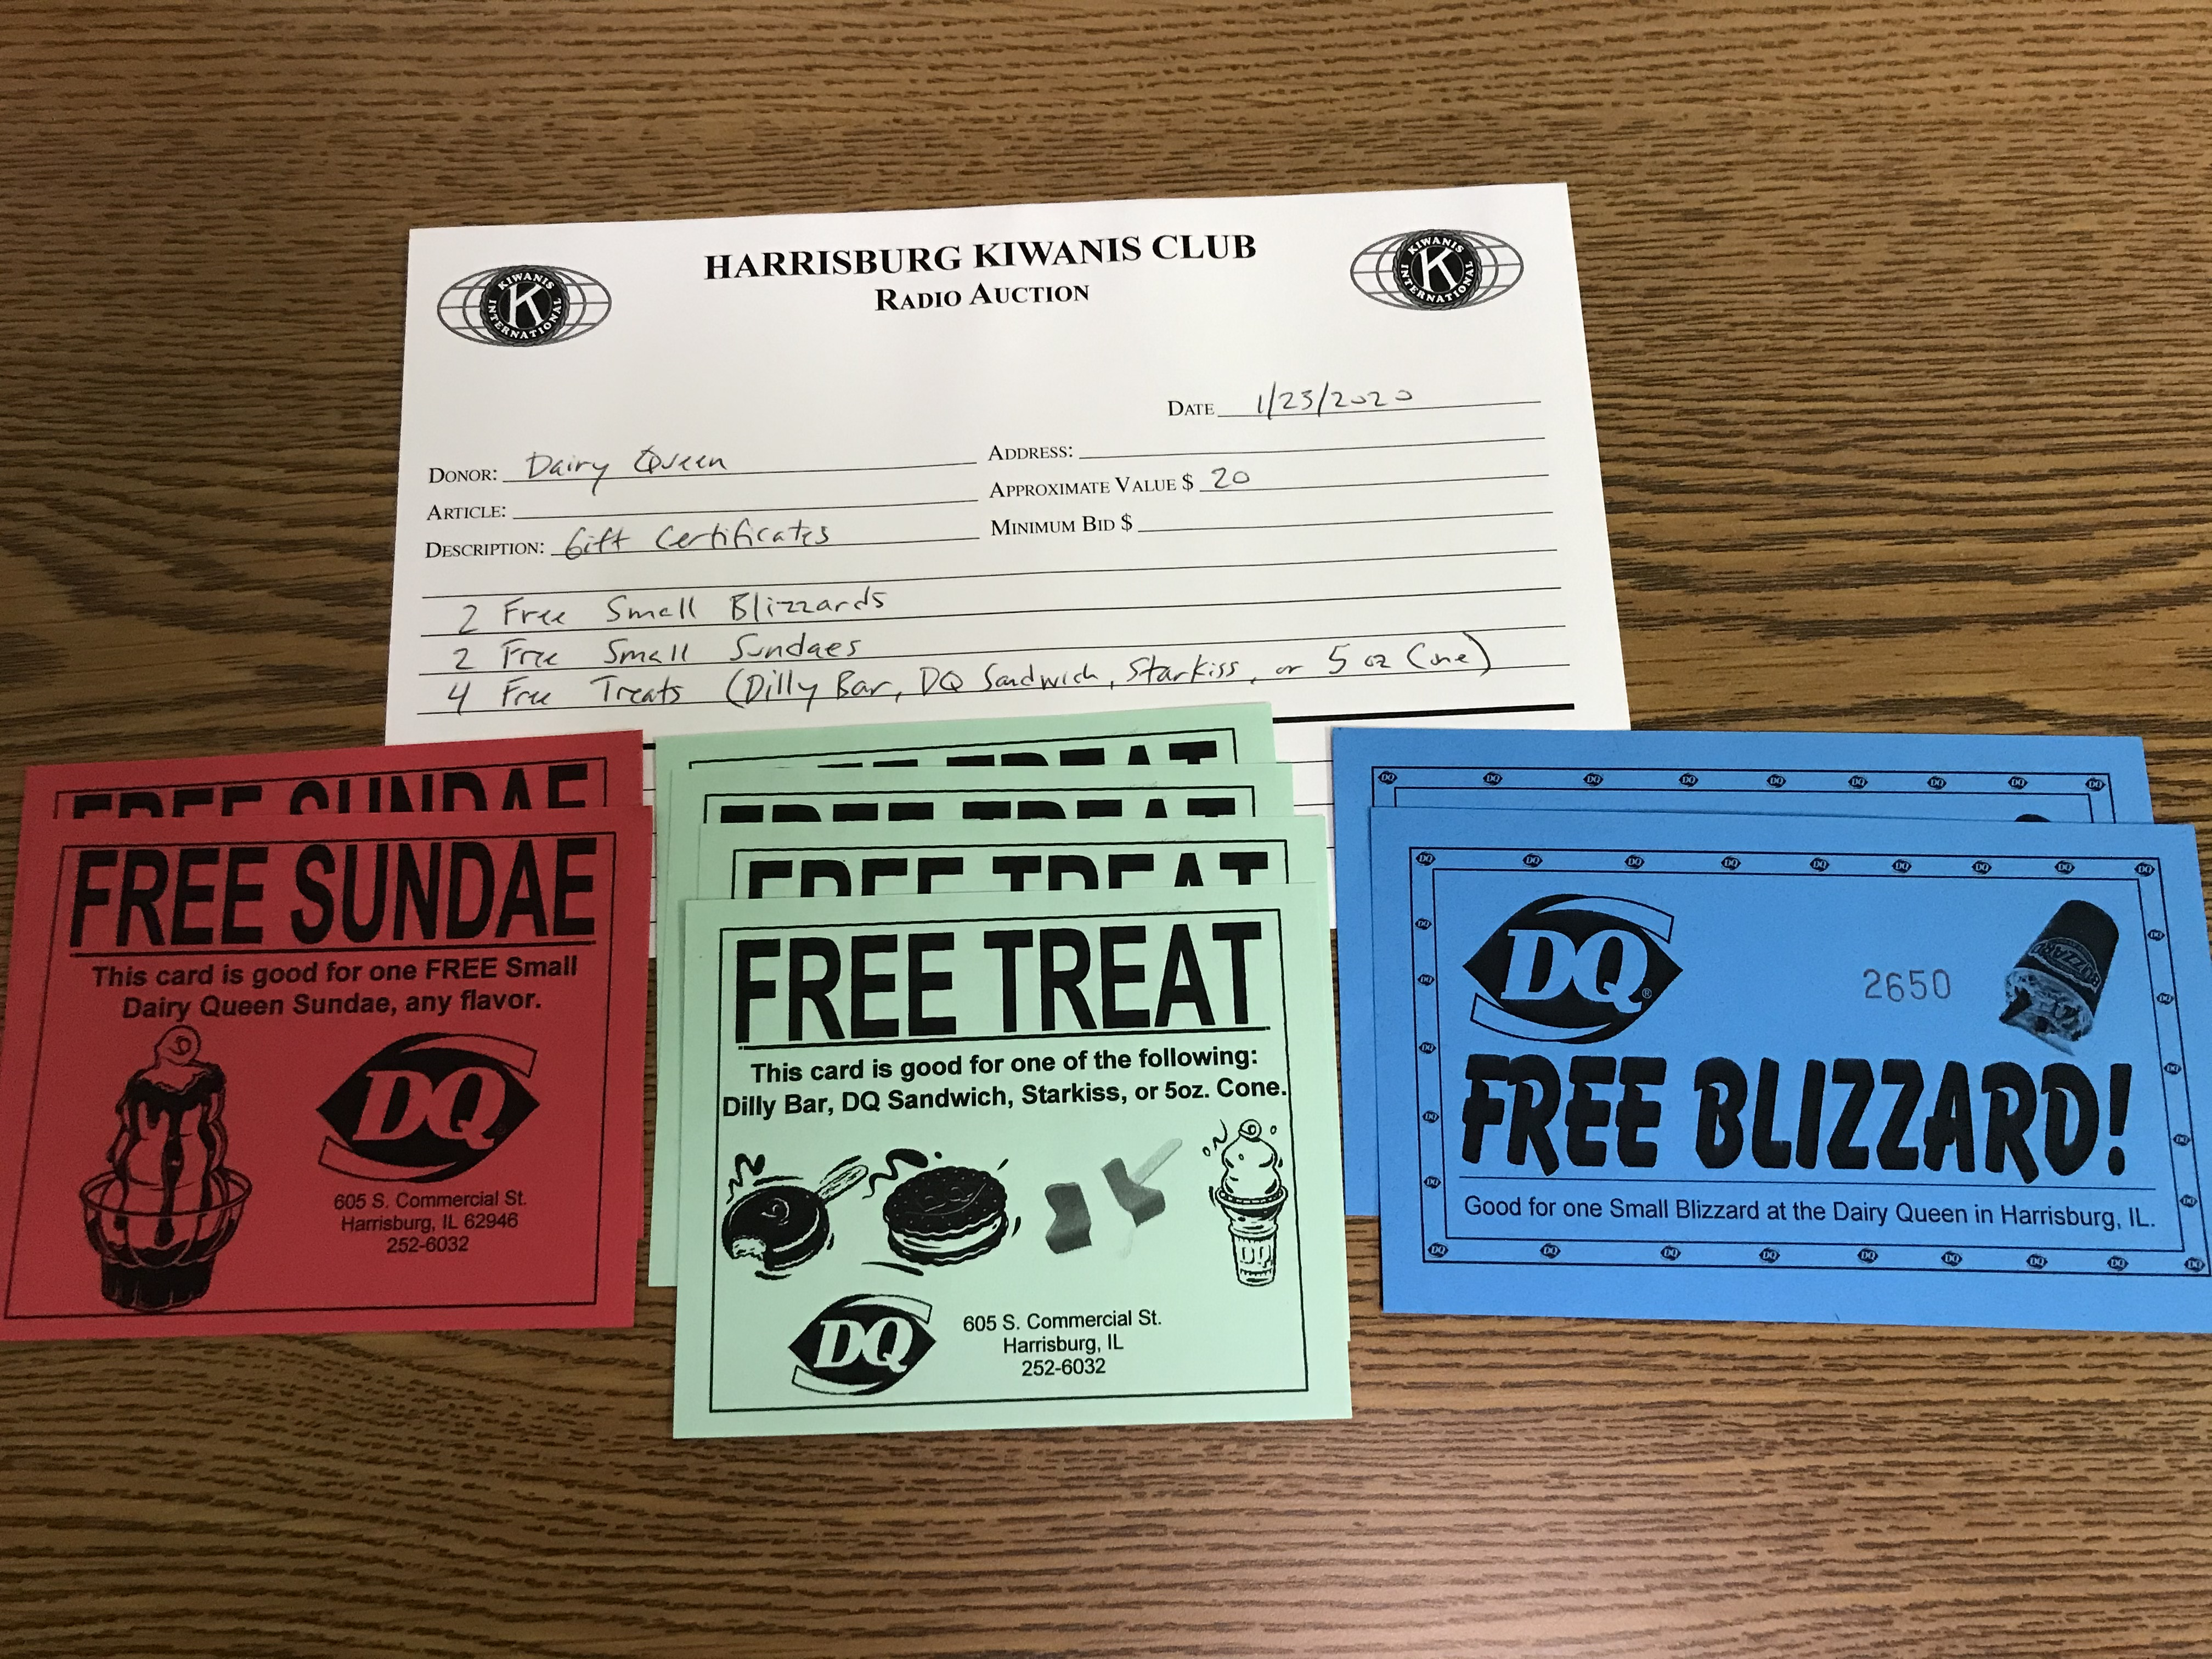 Item 332 - Dairy Queen 2 Free Small Blizzards, 2 Free Small Sundaes, 4 Free Treats (Dilly Bar, DQ Sandwich, Starkiss, or 5 oz Cone)